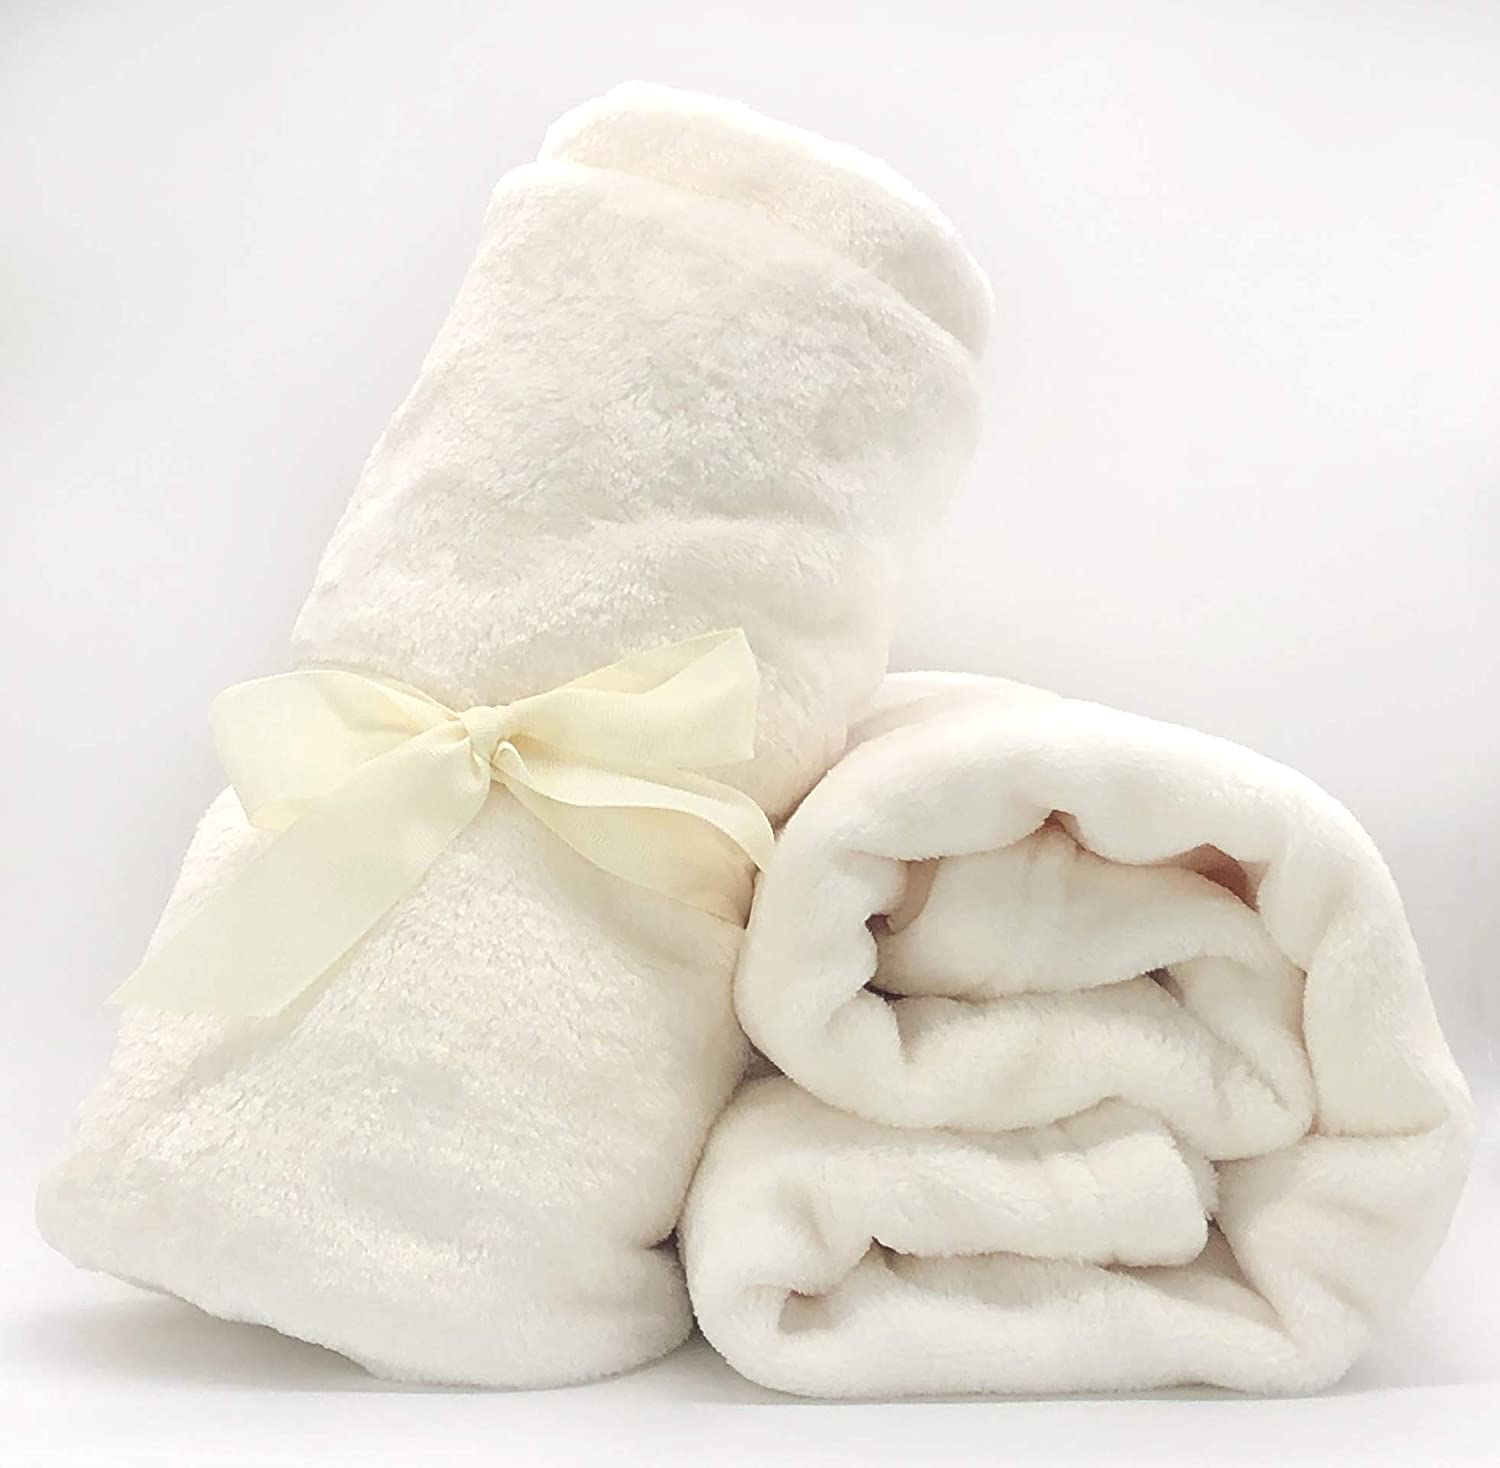 Ultra Soft & Warm Winter Throw Baby Blanket - Premium Coral Fleece for Girls and Boys - 30x40 Inches Super Fluffy and Cozy Flannel Receiving Blanket for Crib, Stroller, Swaddle, Car Seat, Pet (Ivory)